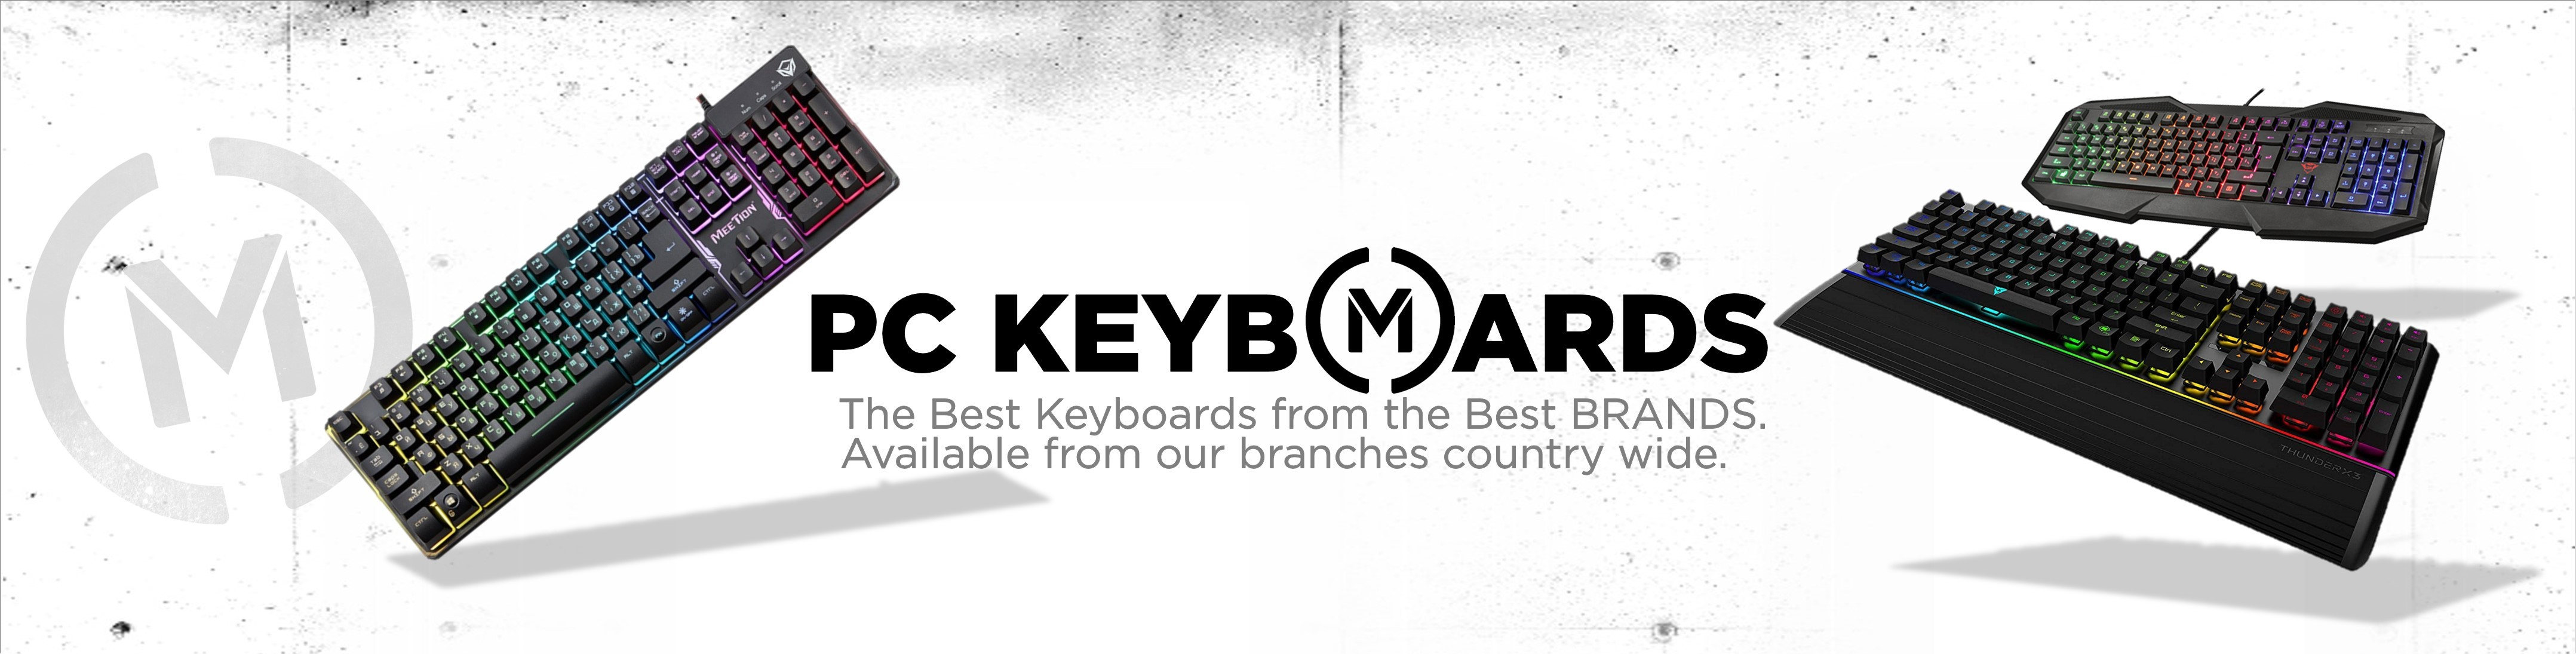 Matrix PC Keyboards Banner